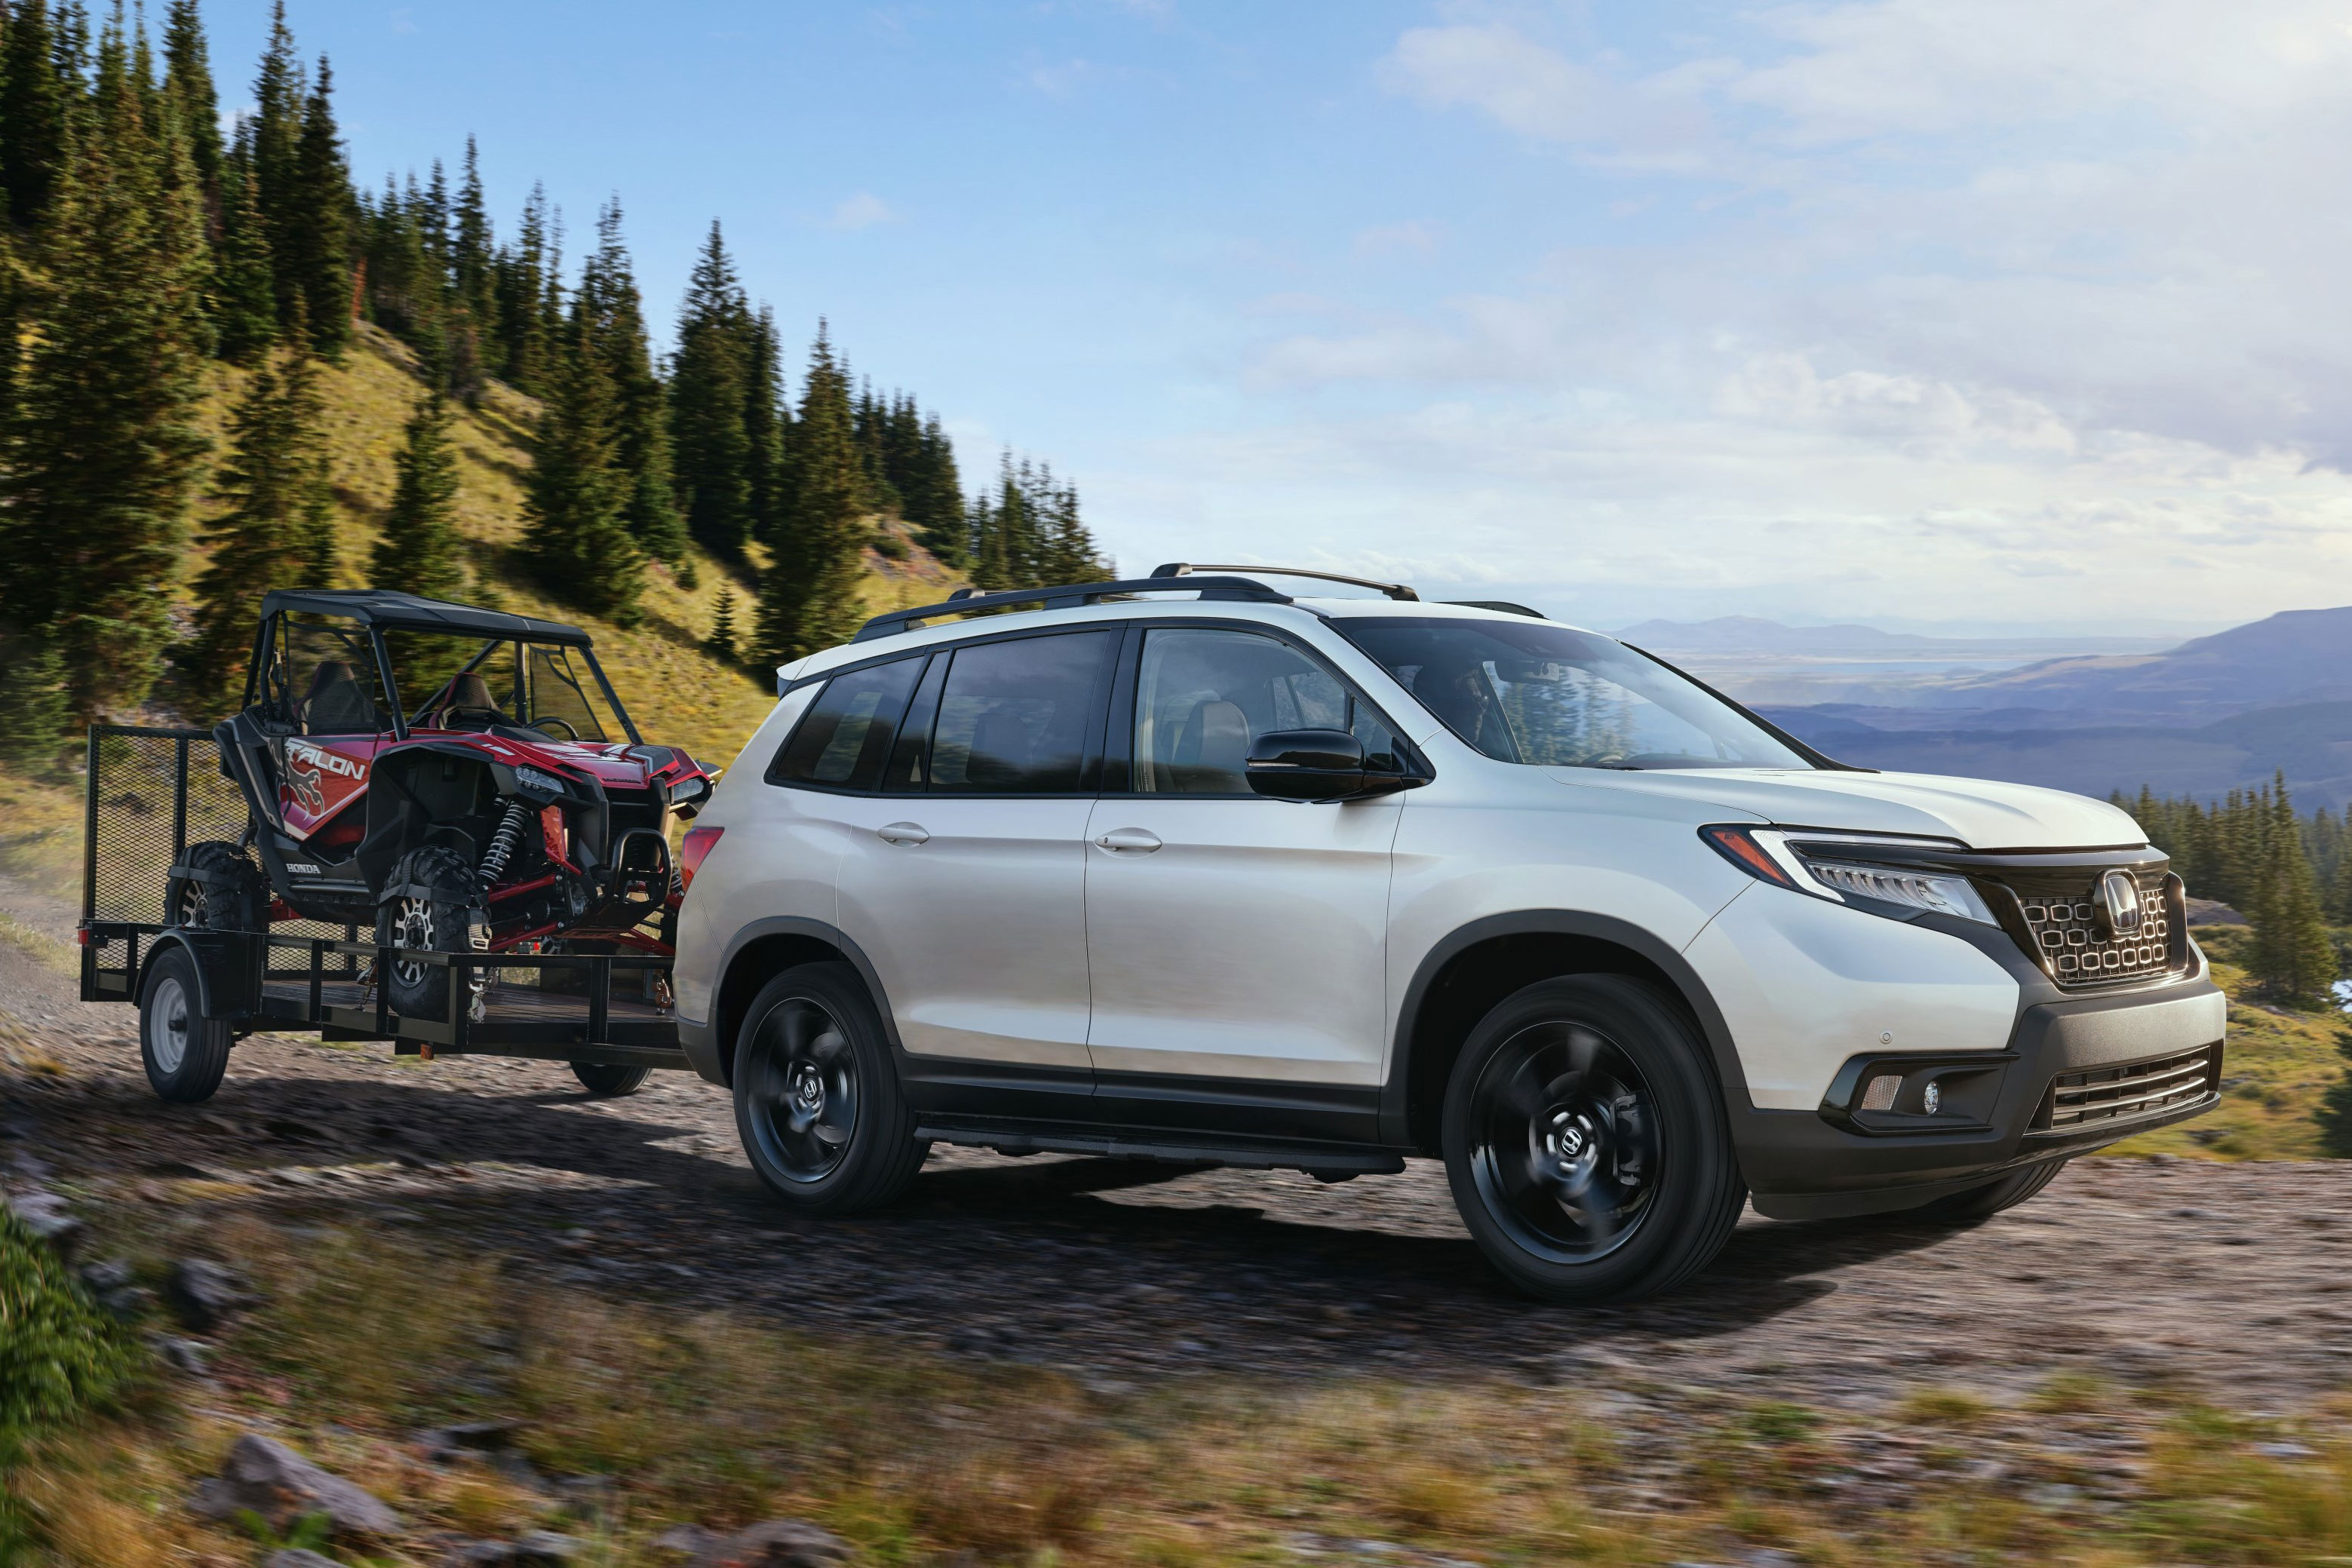 2019 Honda Pilot >> 2019 Honda Passport Relaunch Aims for Mountain Town Market | GearJunkie